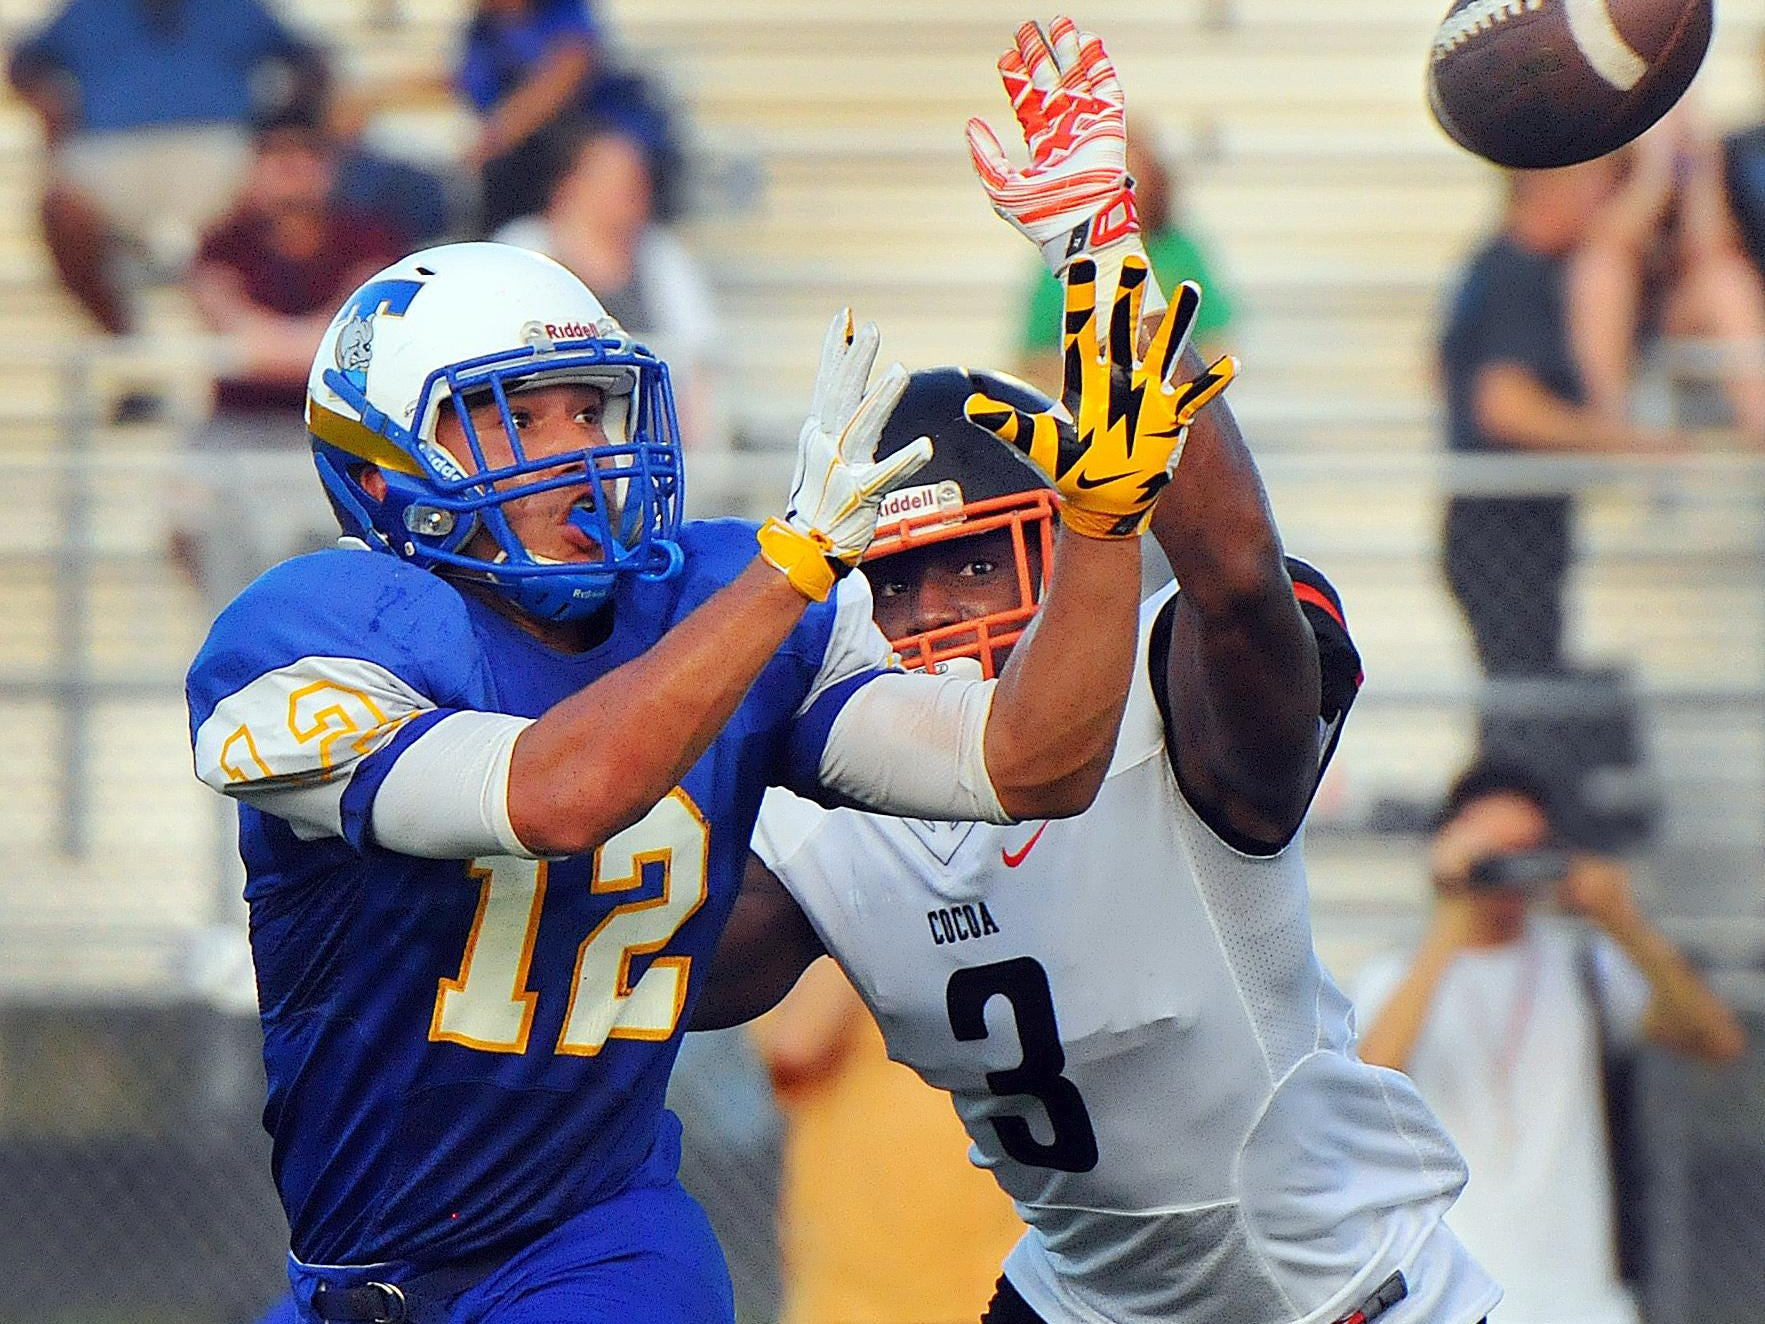 Titusville High's Tommy Mack (12) goes up for a catch with Cocoa High's Chauncey Gardner defending during Friday night's preseason game held at Titusville High. Cocoa won 38-13.